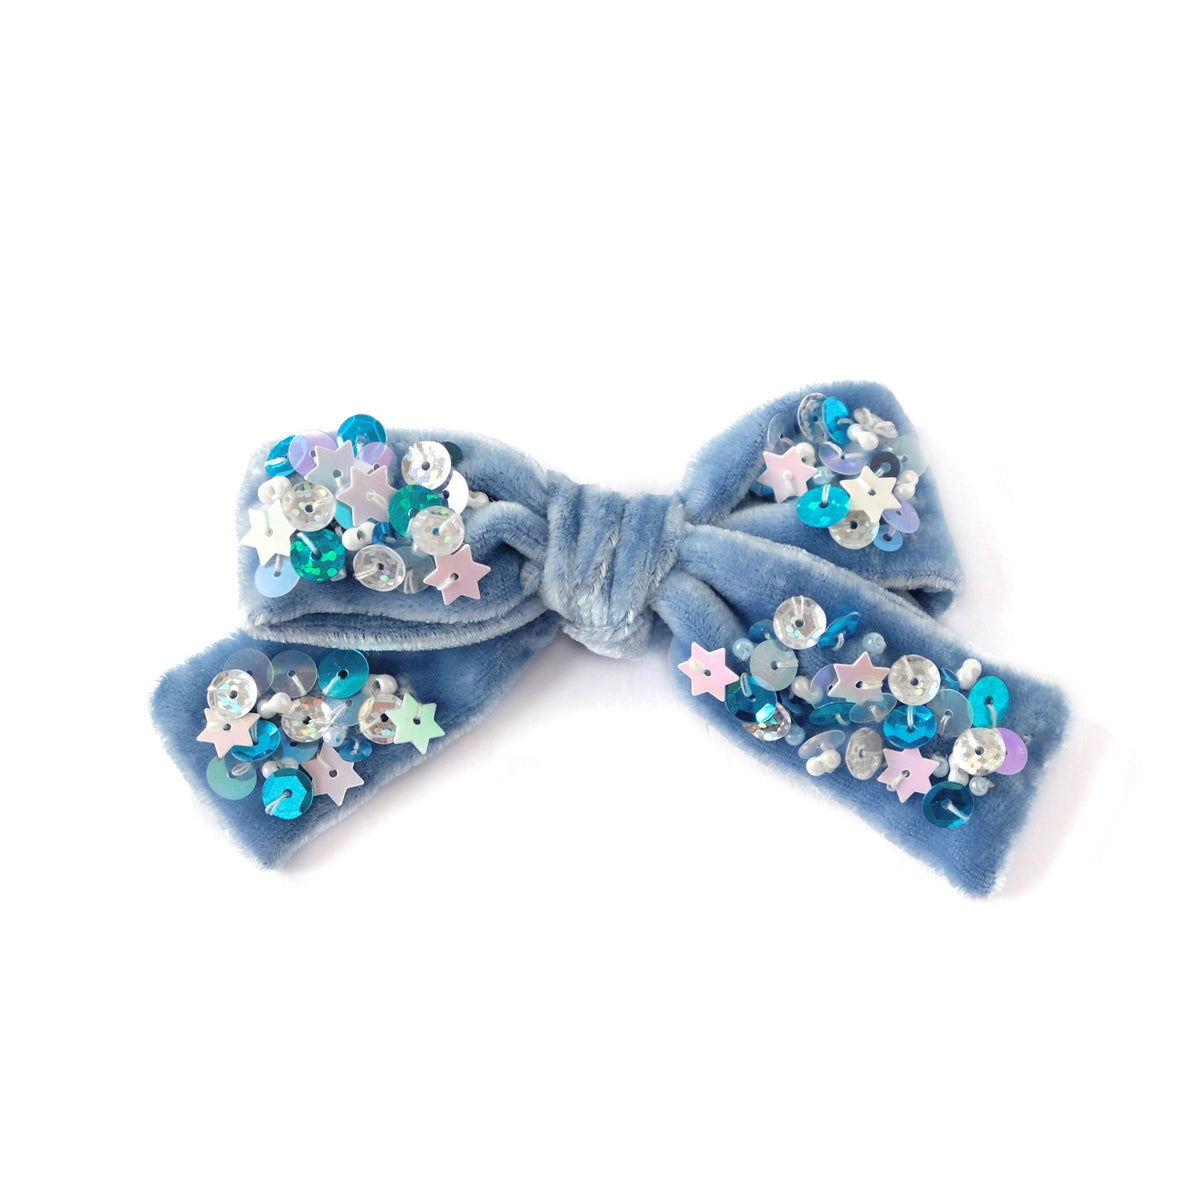 Silk velvet hair bow with sequin in periwinkle blue.